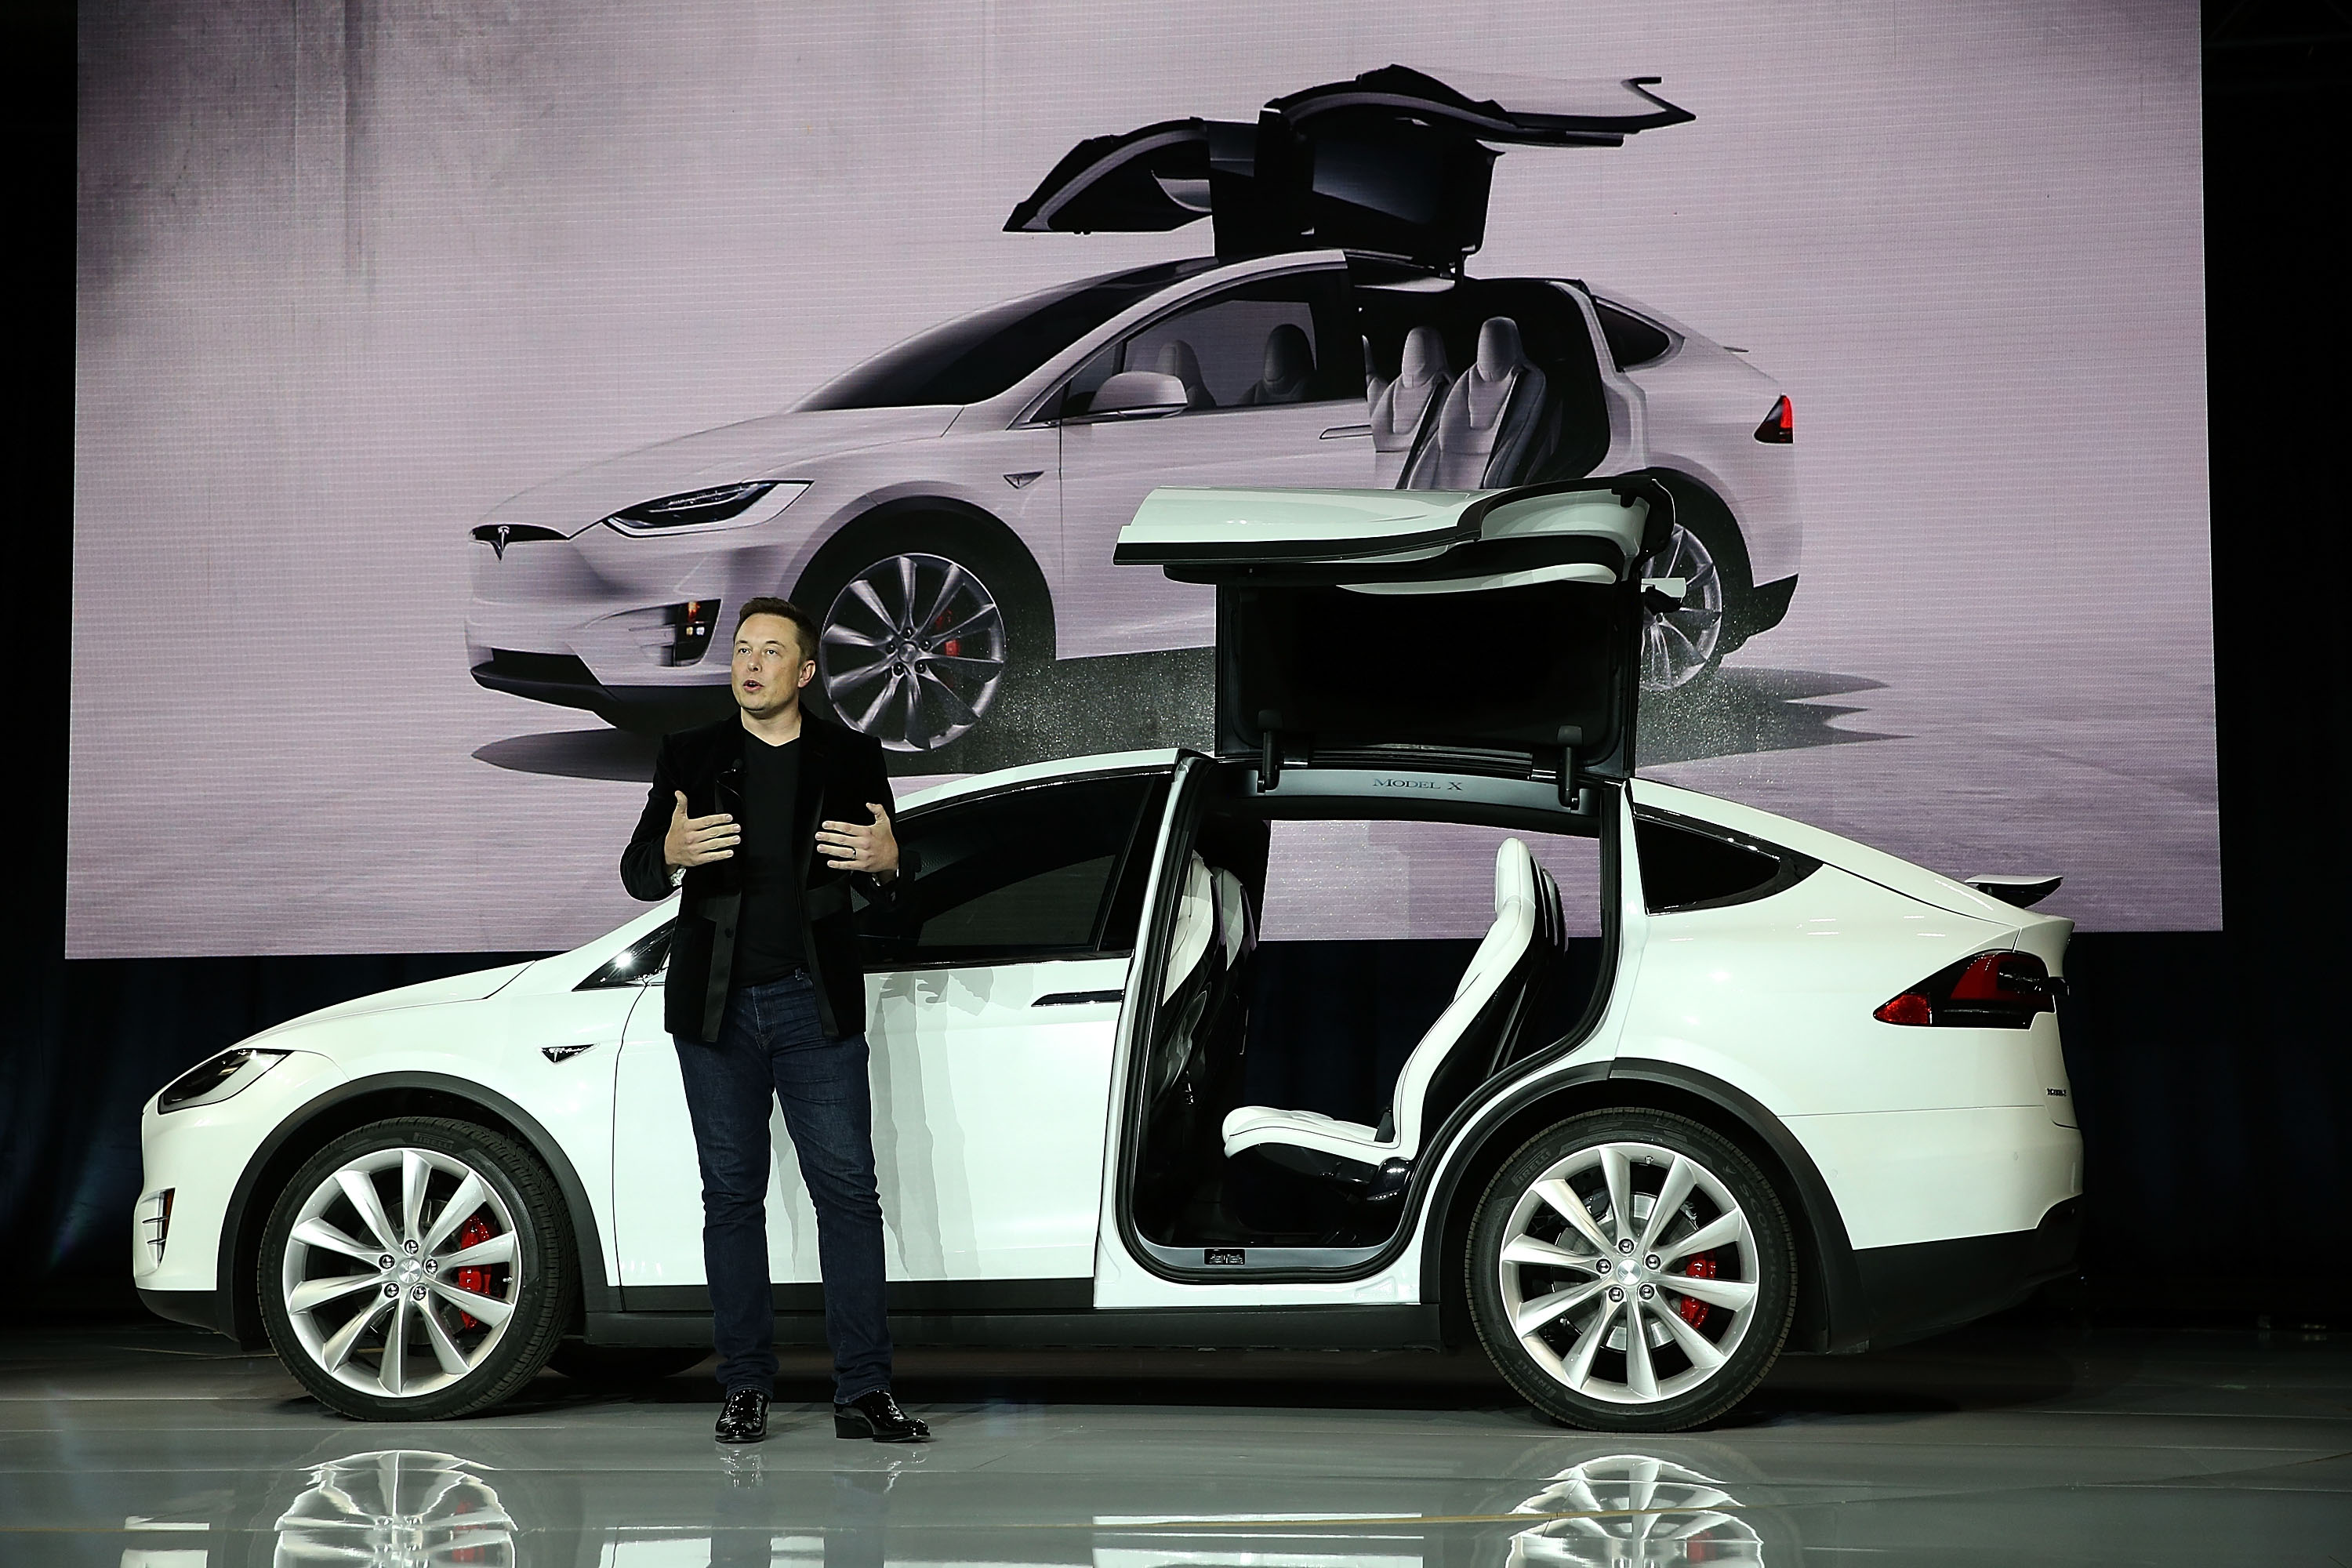 In this file photo, Tesla CEO Elon Musk speaks during an event to launch the new Tesla Model X Crossover SUV on September 29, 2015 in Fremont, California. Musk announced on Tuesday that he is considering taking the company private, valuing it at $82 billion.